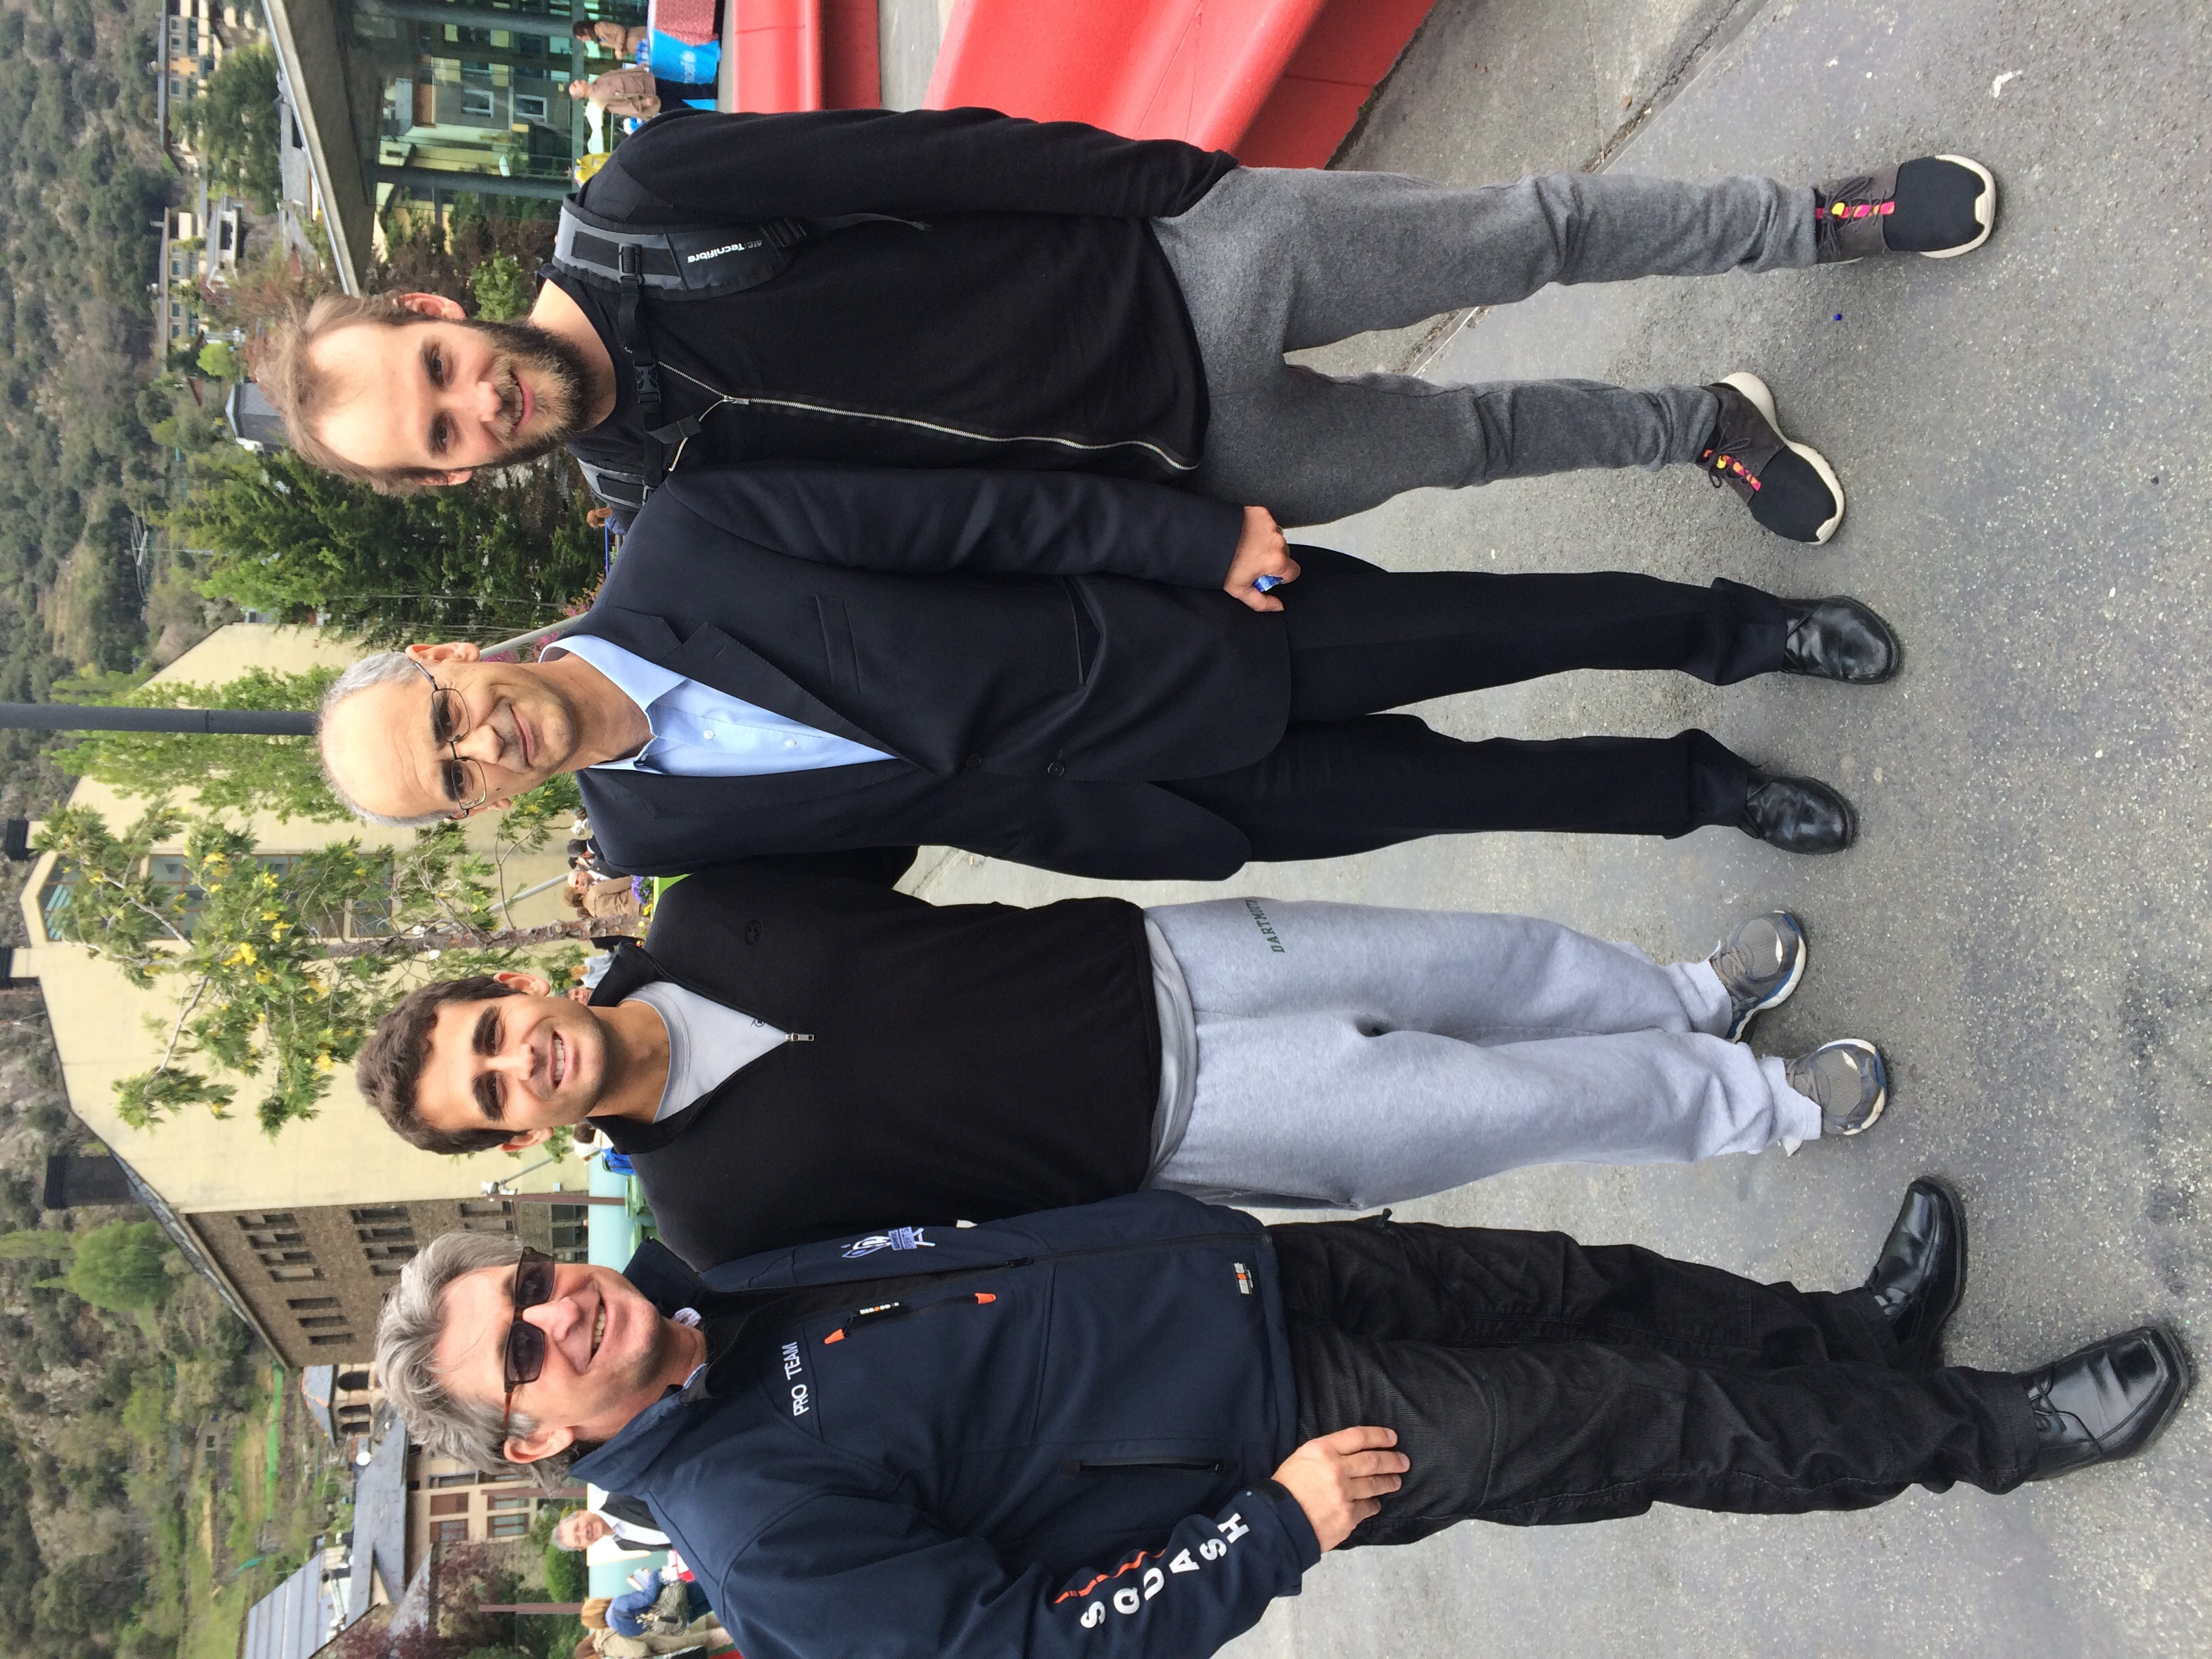 The President of Andorra (suit) with some random squash enthusiasts